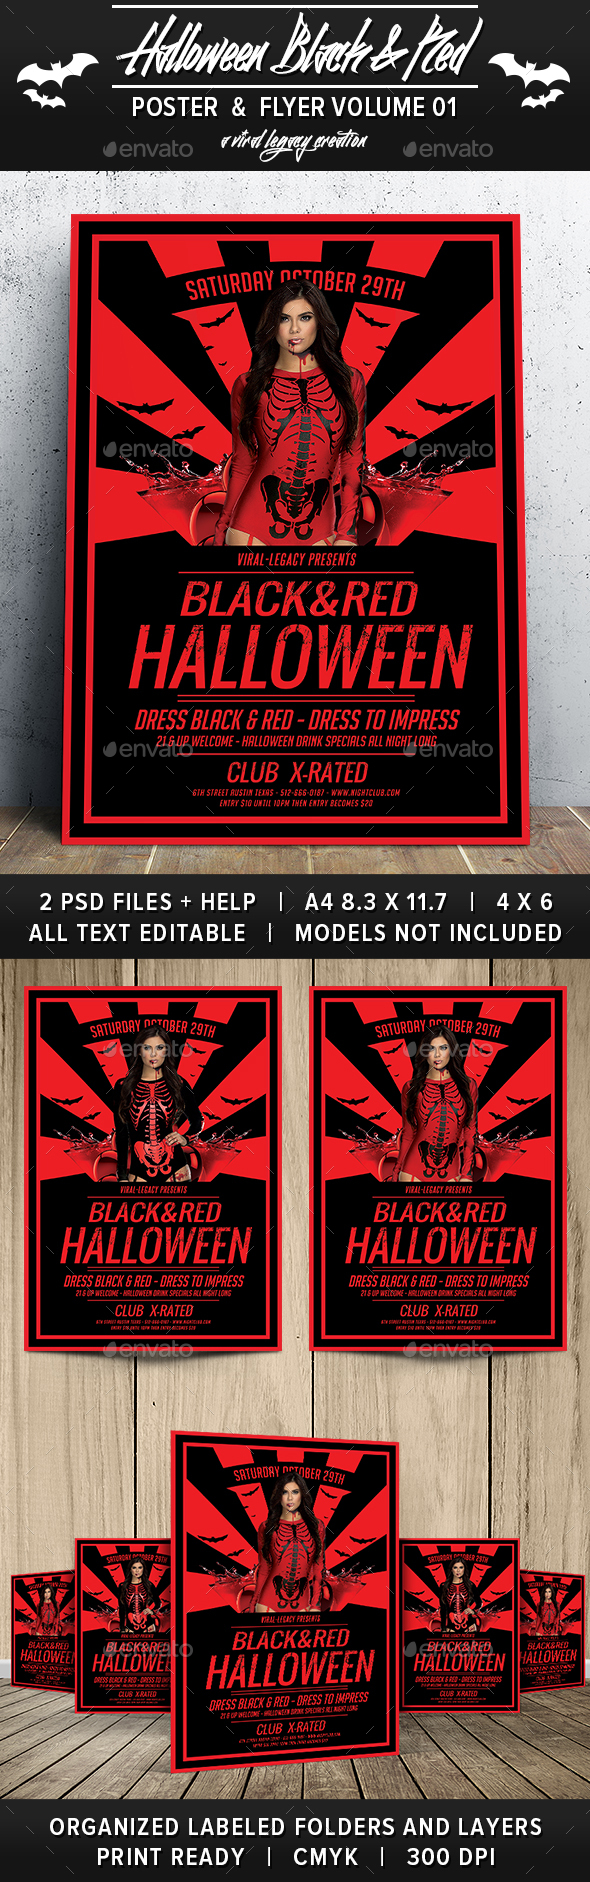 Black & Red Halloween V01